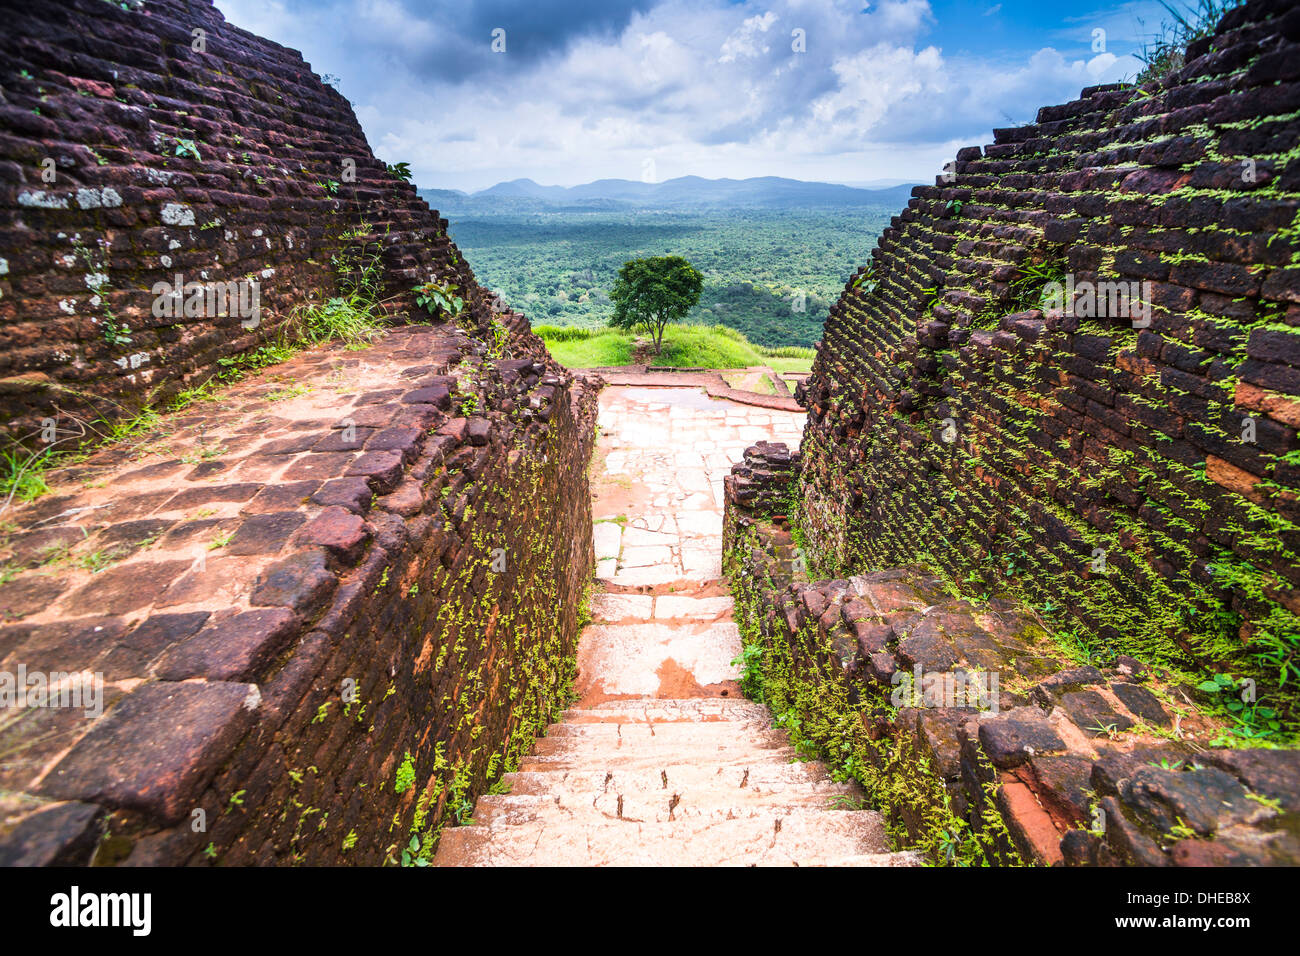 Ruins at the top of Sigiriya Rock Fortress (Lion Rock), UNESCO World Heritage Site, Sri Lanka, Asia - Stock Image